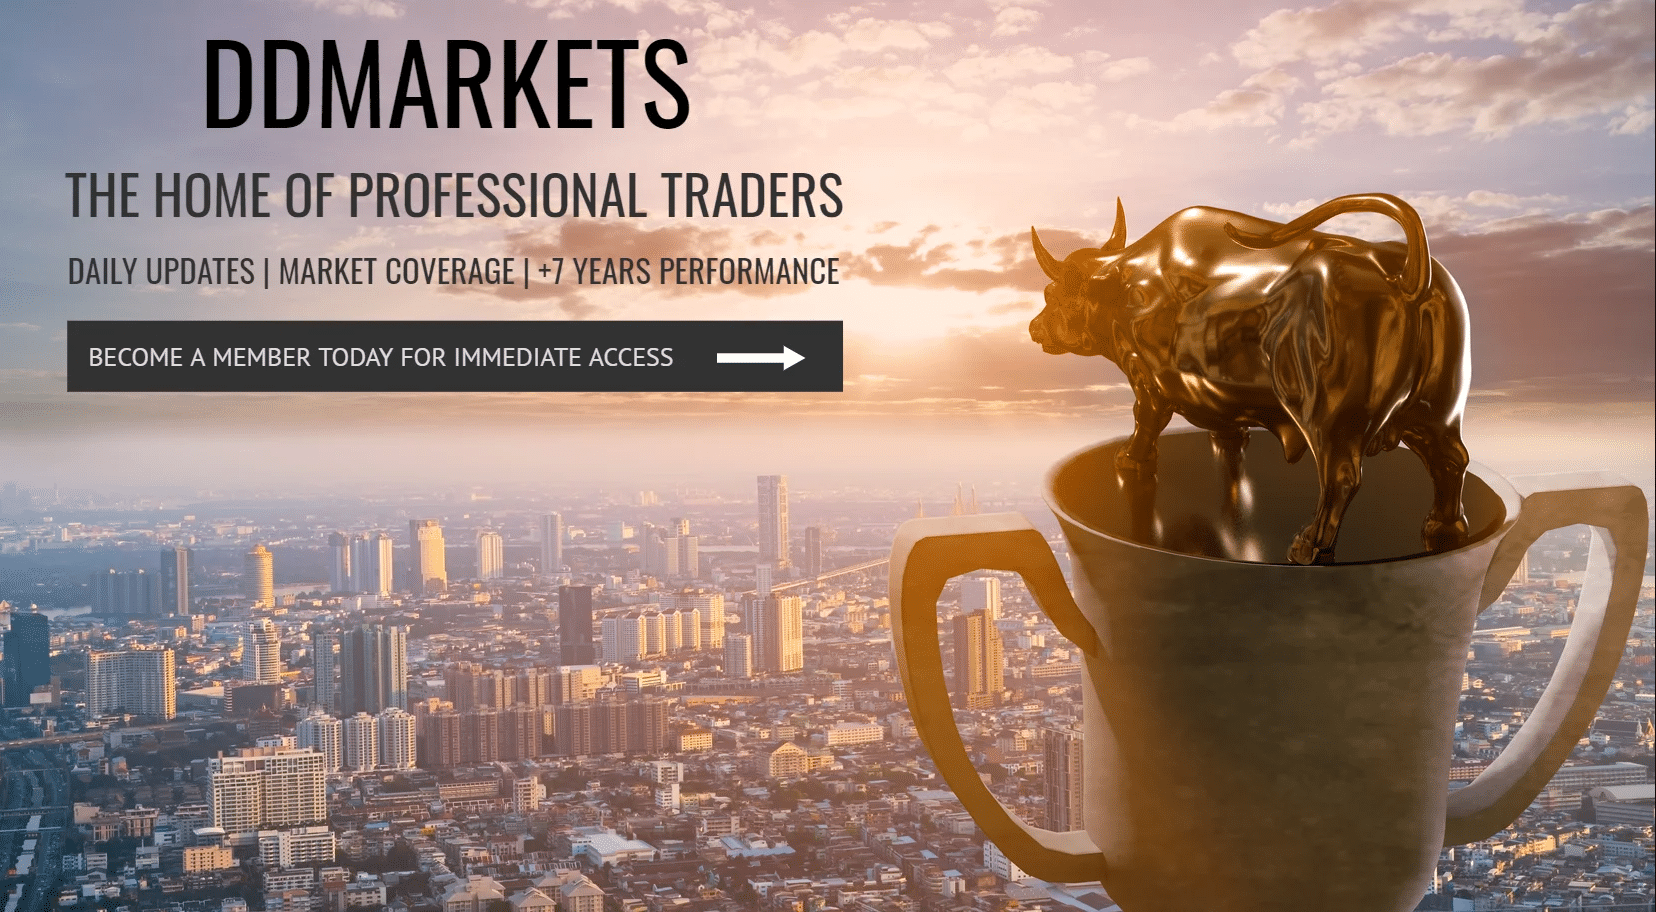 ddmarkets-best-forex-signals-provider-in-the-leading-markets